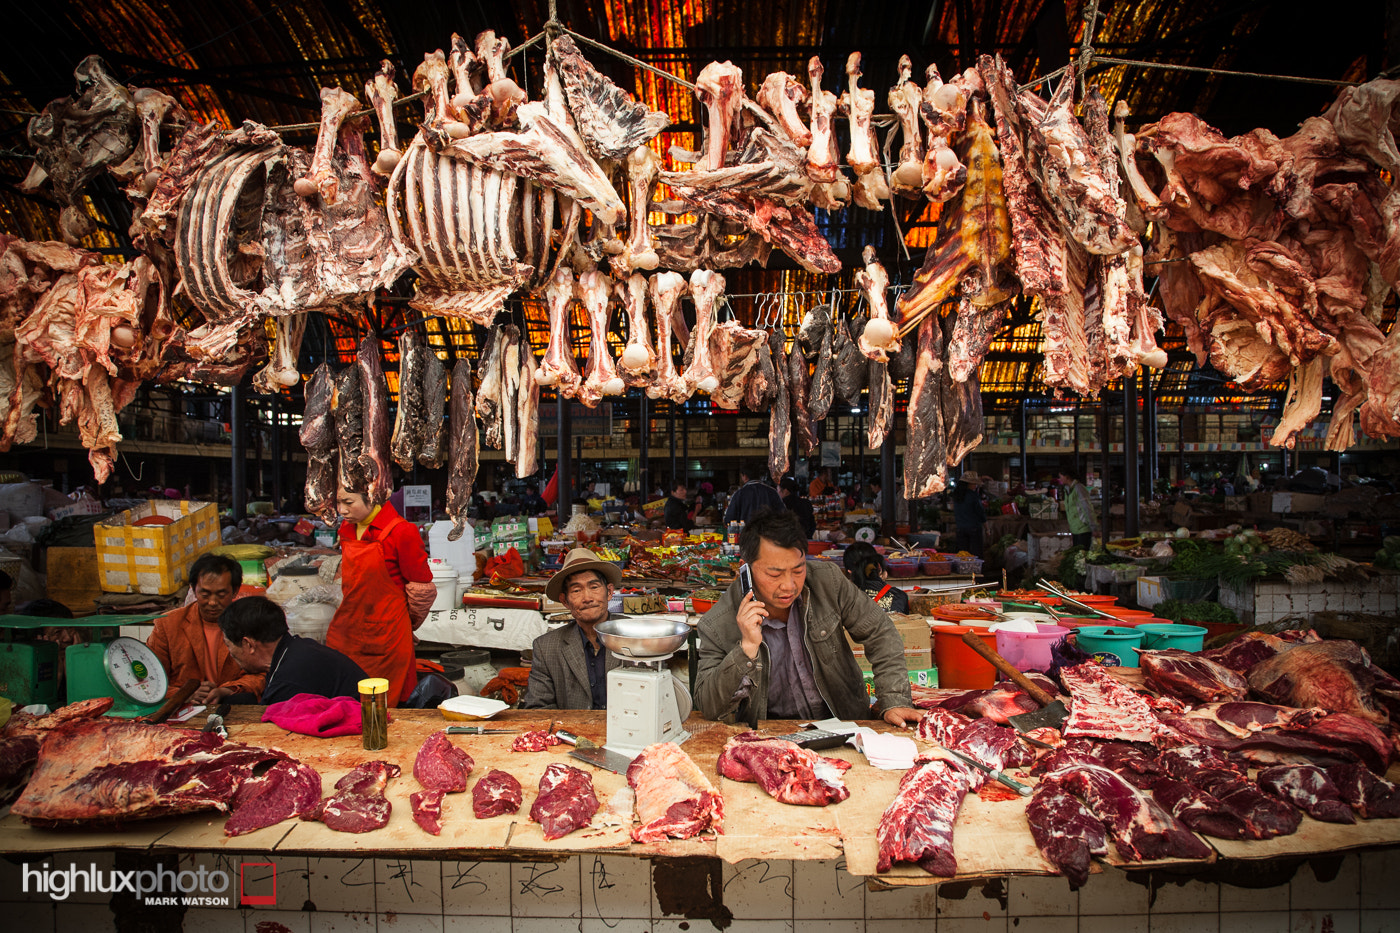 Photograph The Butcher by Mark Watson on 500px